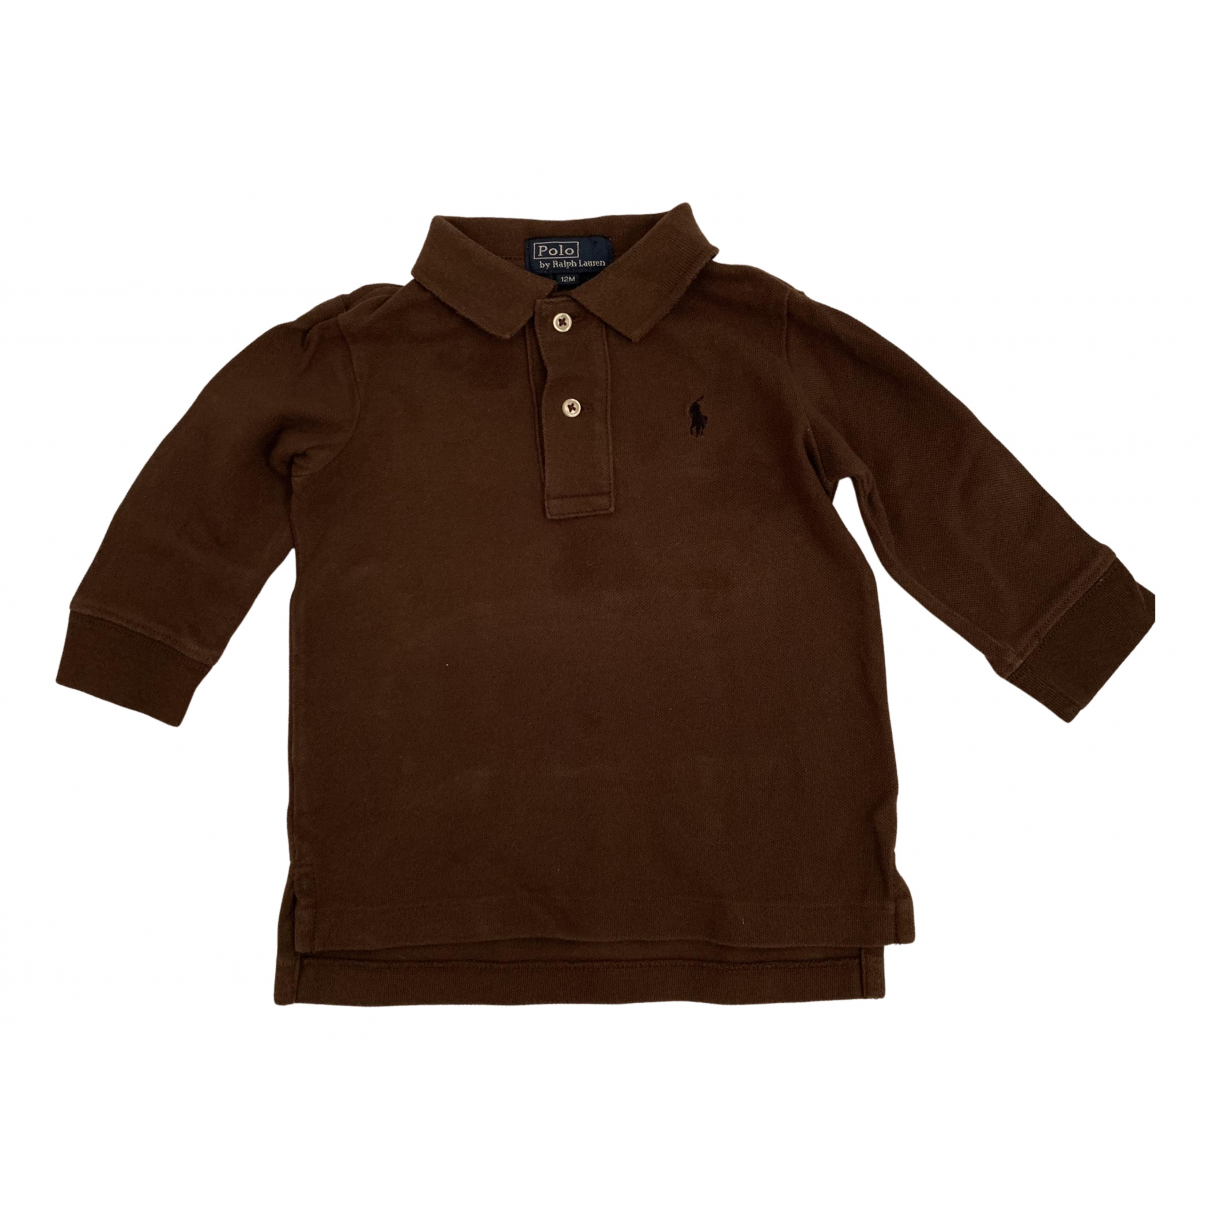 Polo Ralph Lauren - Top   pour enfant en coton - marron